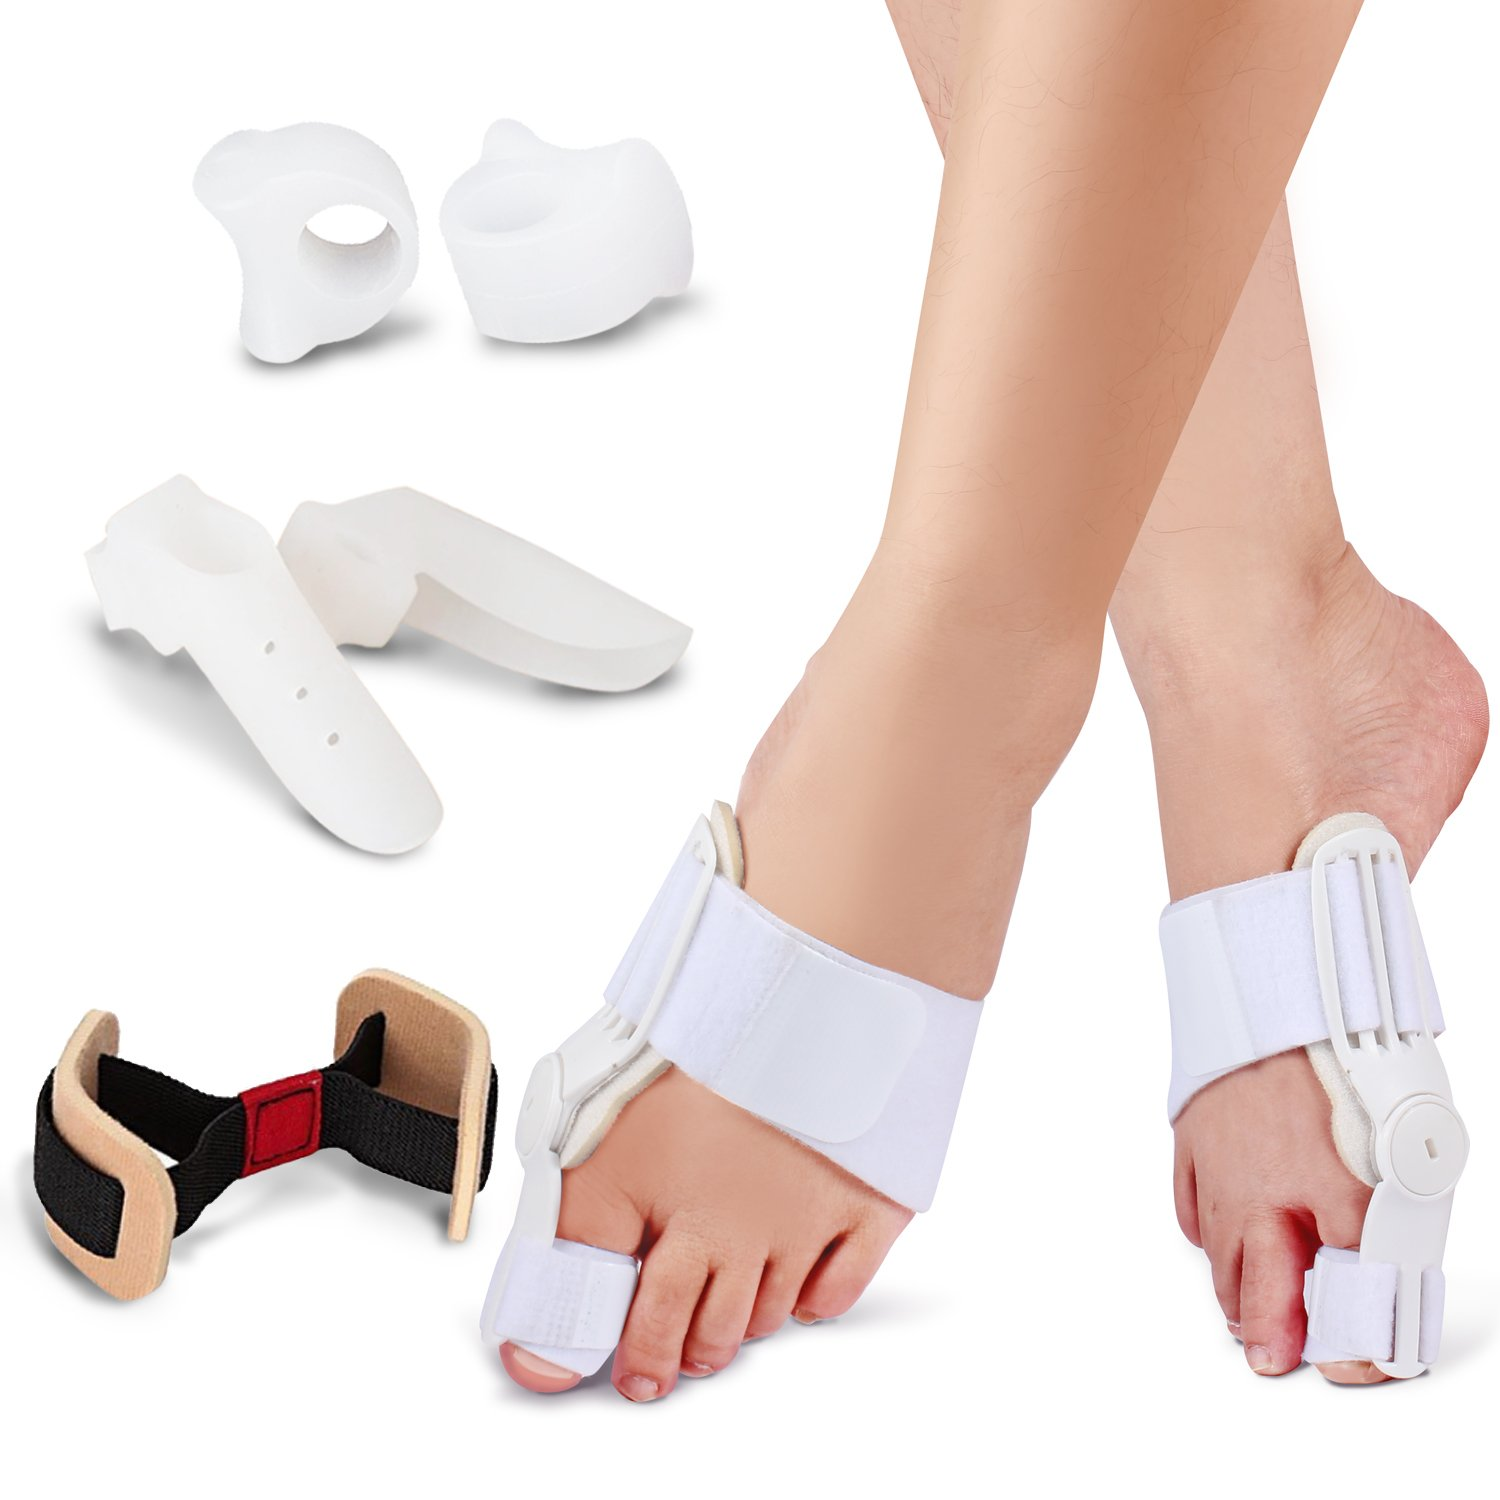 Bunion Corrector & Bunion Splints-Bunion Relief Kits to Treat Big Toe Joint, Hallux Valgus, Hammer Toe, Toe Separators Spacers Straighteners Splint Aid Surgery Treatment for Men & Women.